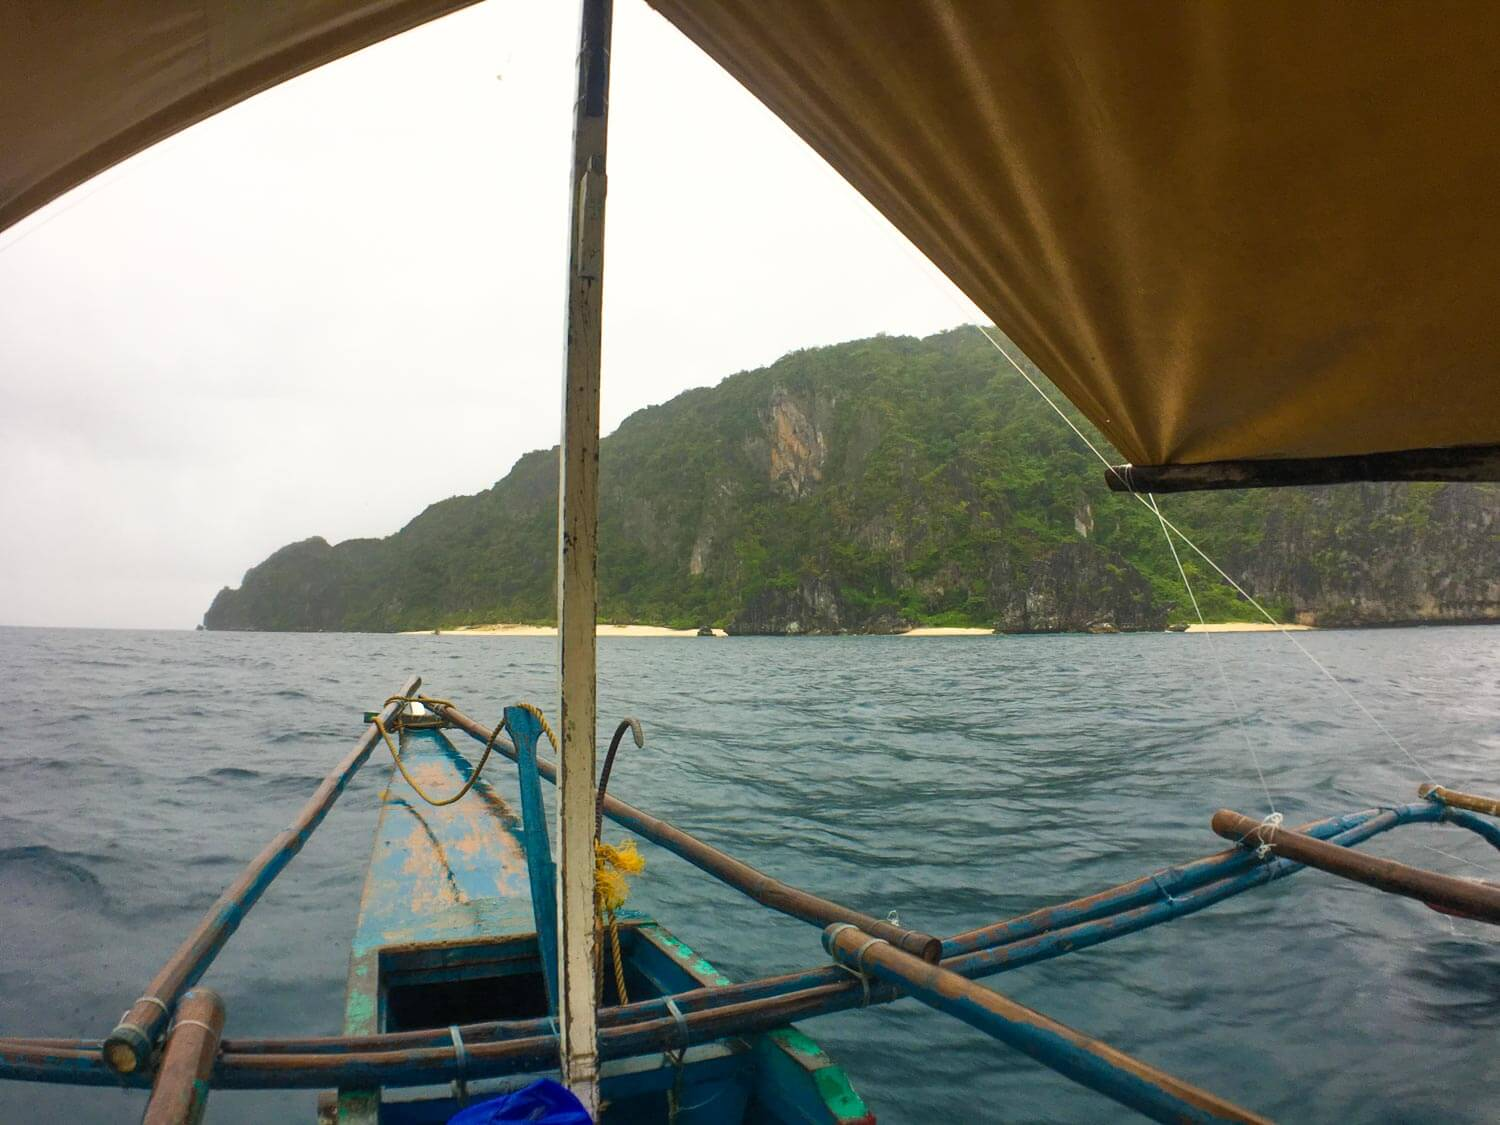 Looking over the bow of our boat with Black Island in the distance